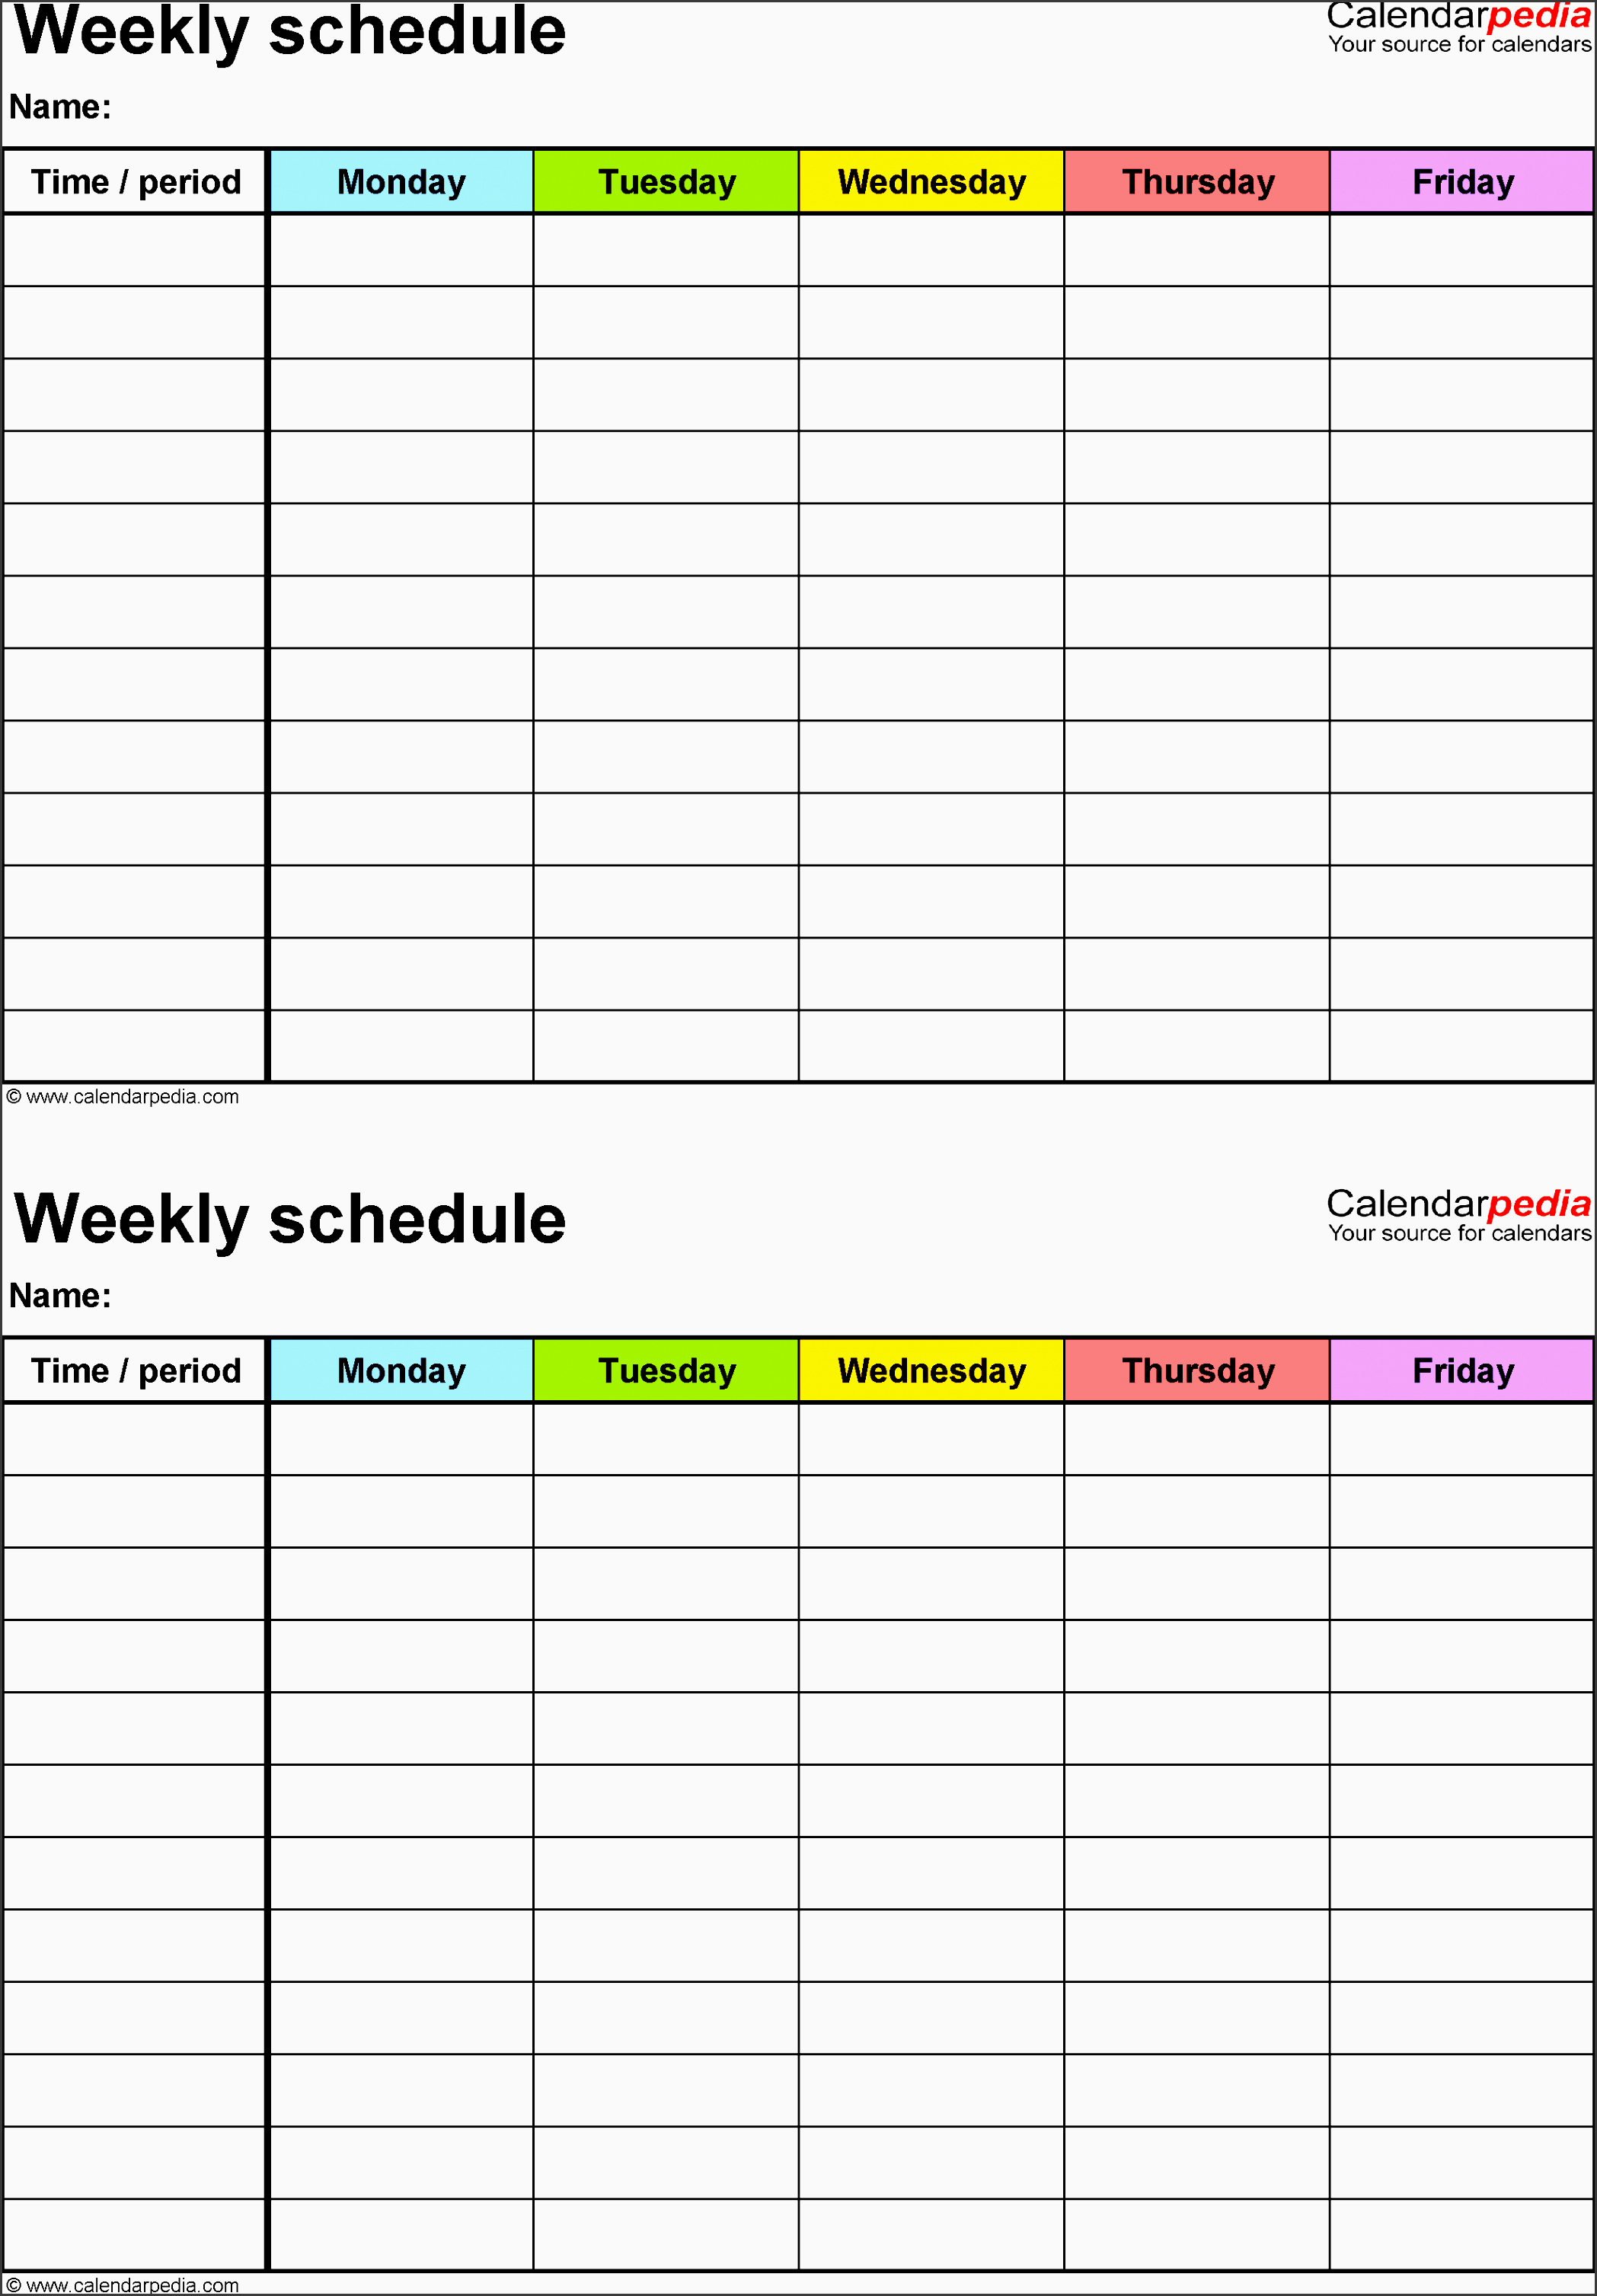 weekly schedule template for excel version 3 2 schedules on one page portrait